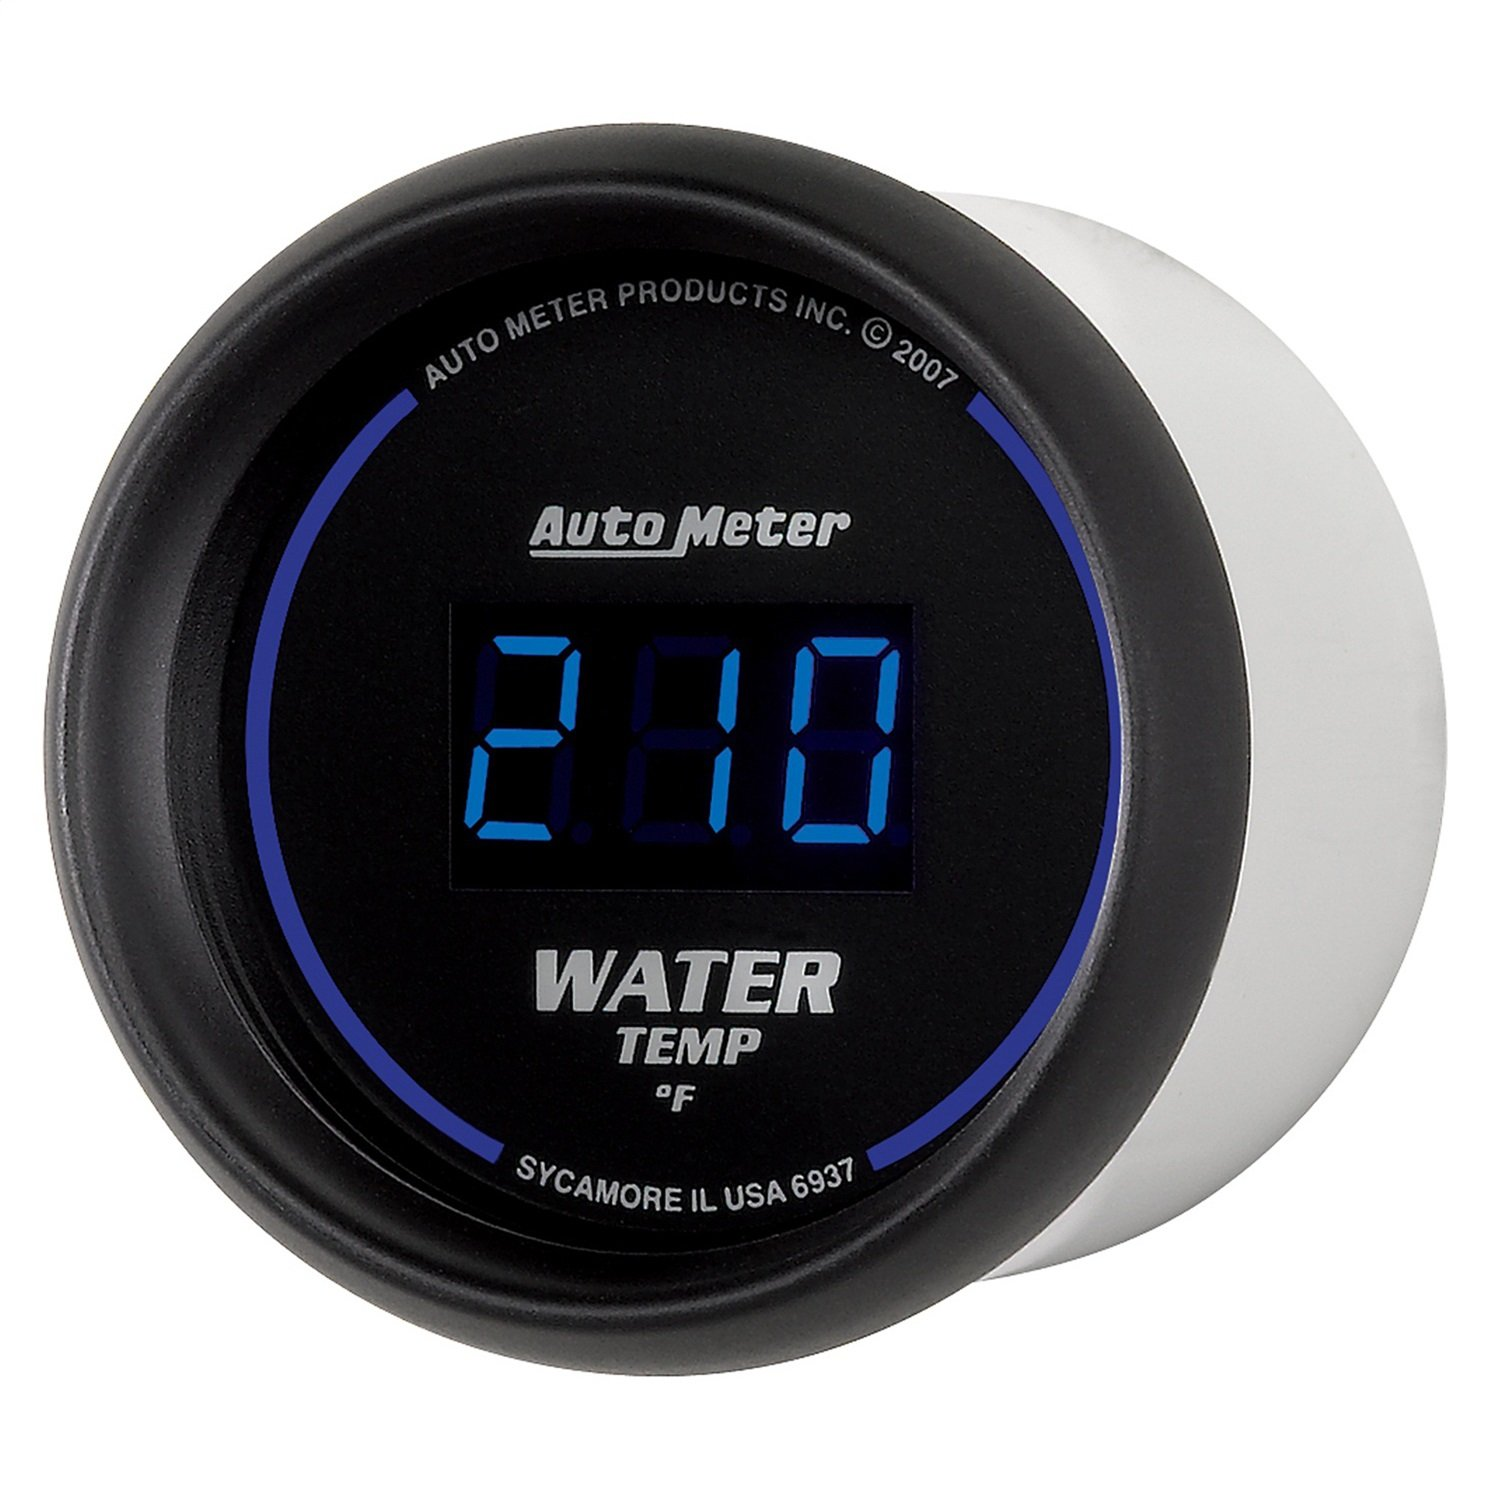 Auto Meter 6937 Cobalt Digital Water Temperature Gauge